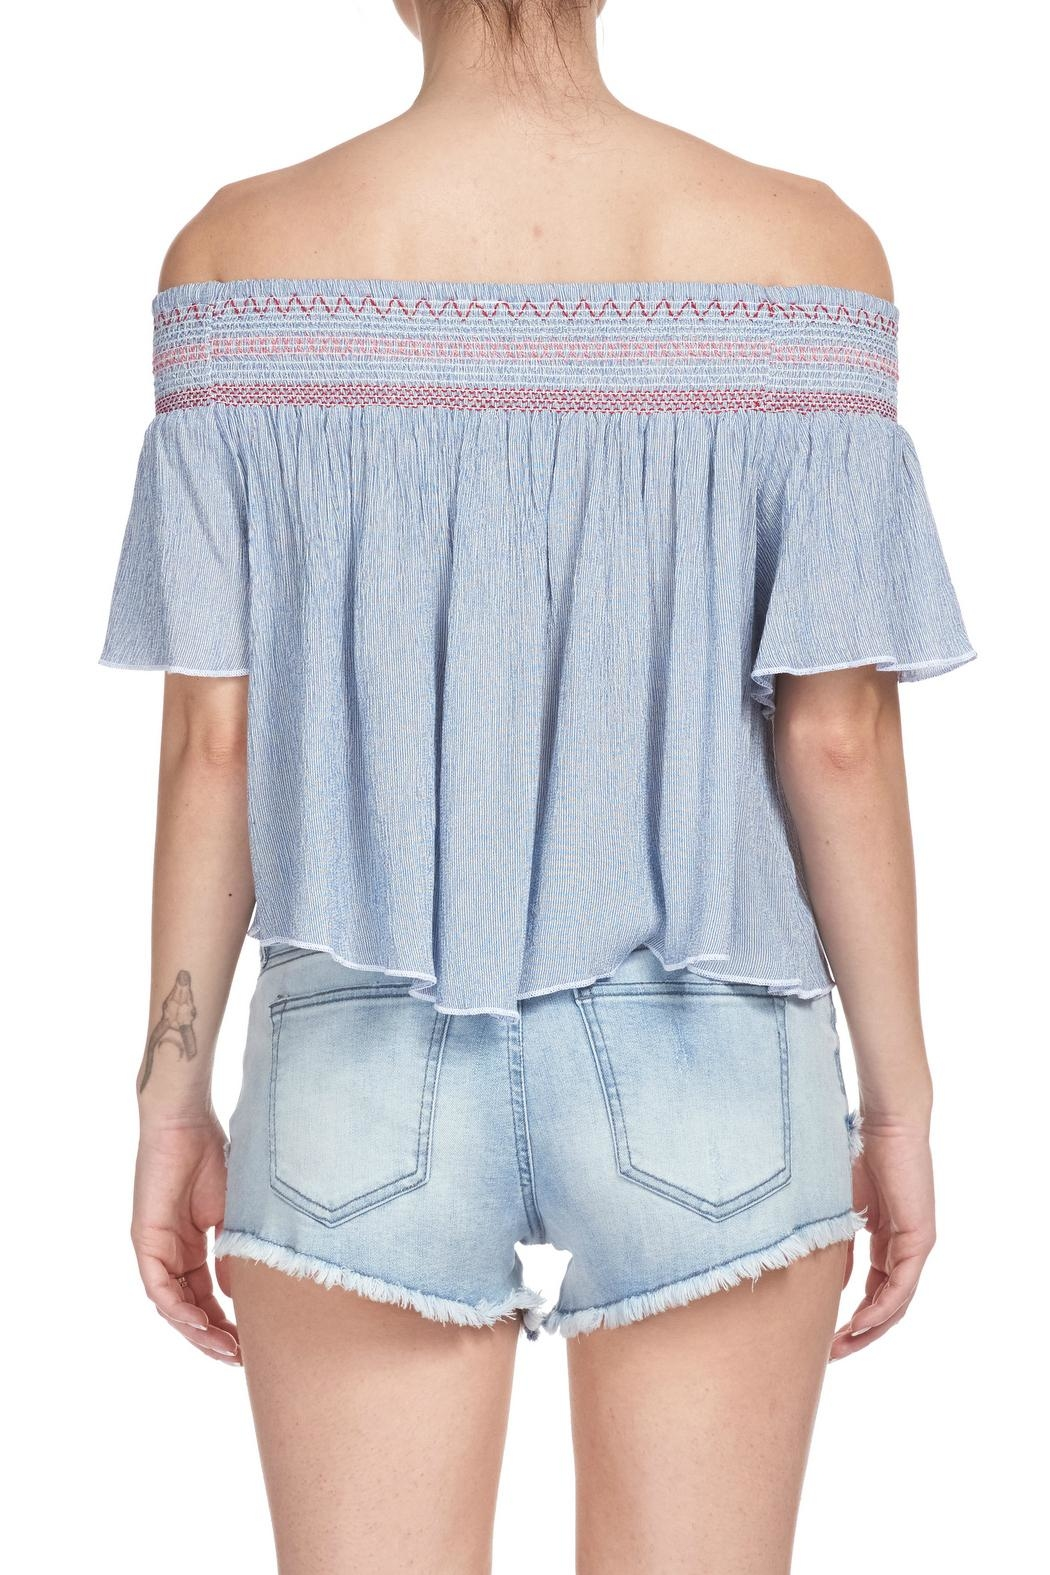 65b2f2e28a759f Elan Gigi Off-The-Shoulder Top from Pennsylvania by The Hanger ...